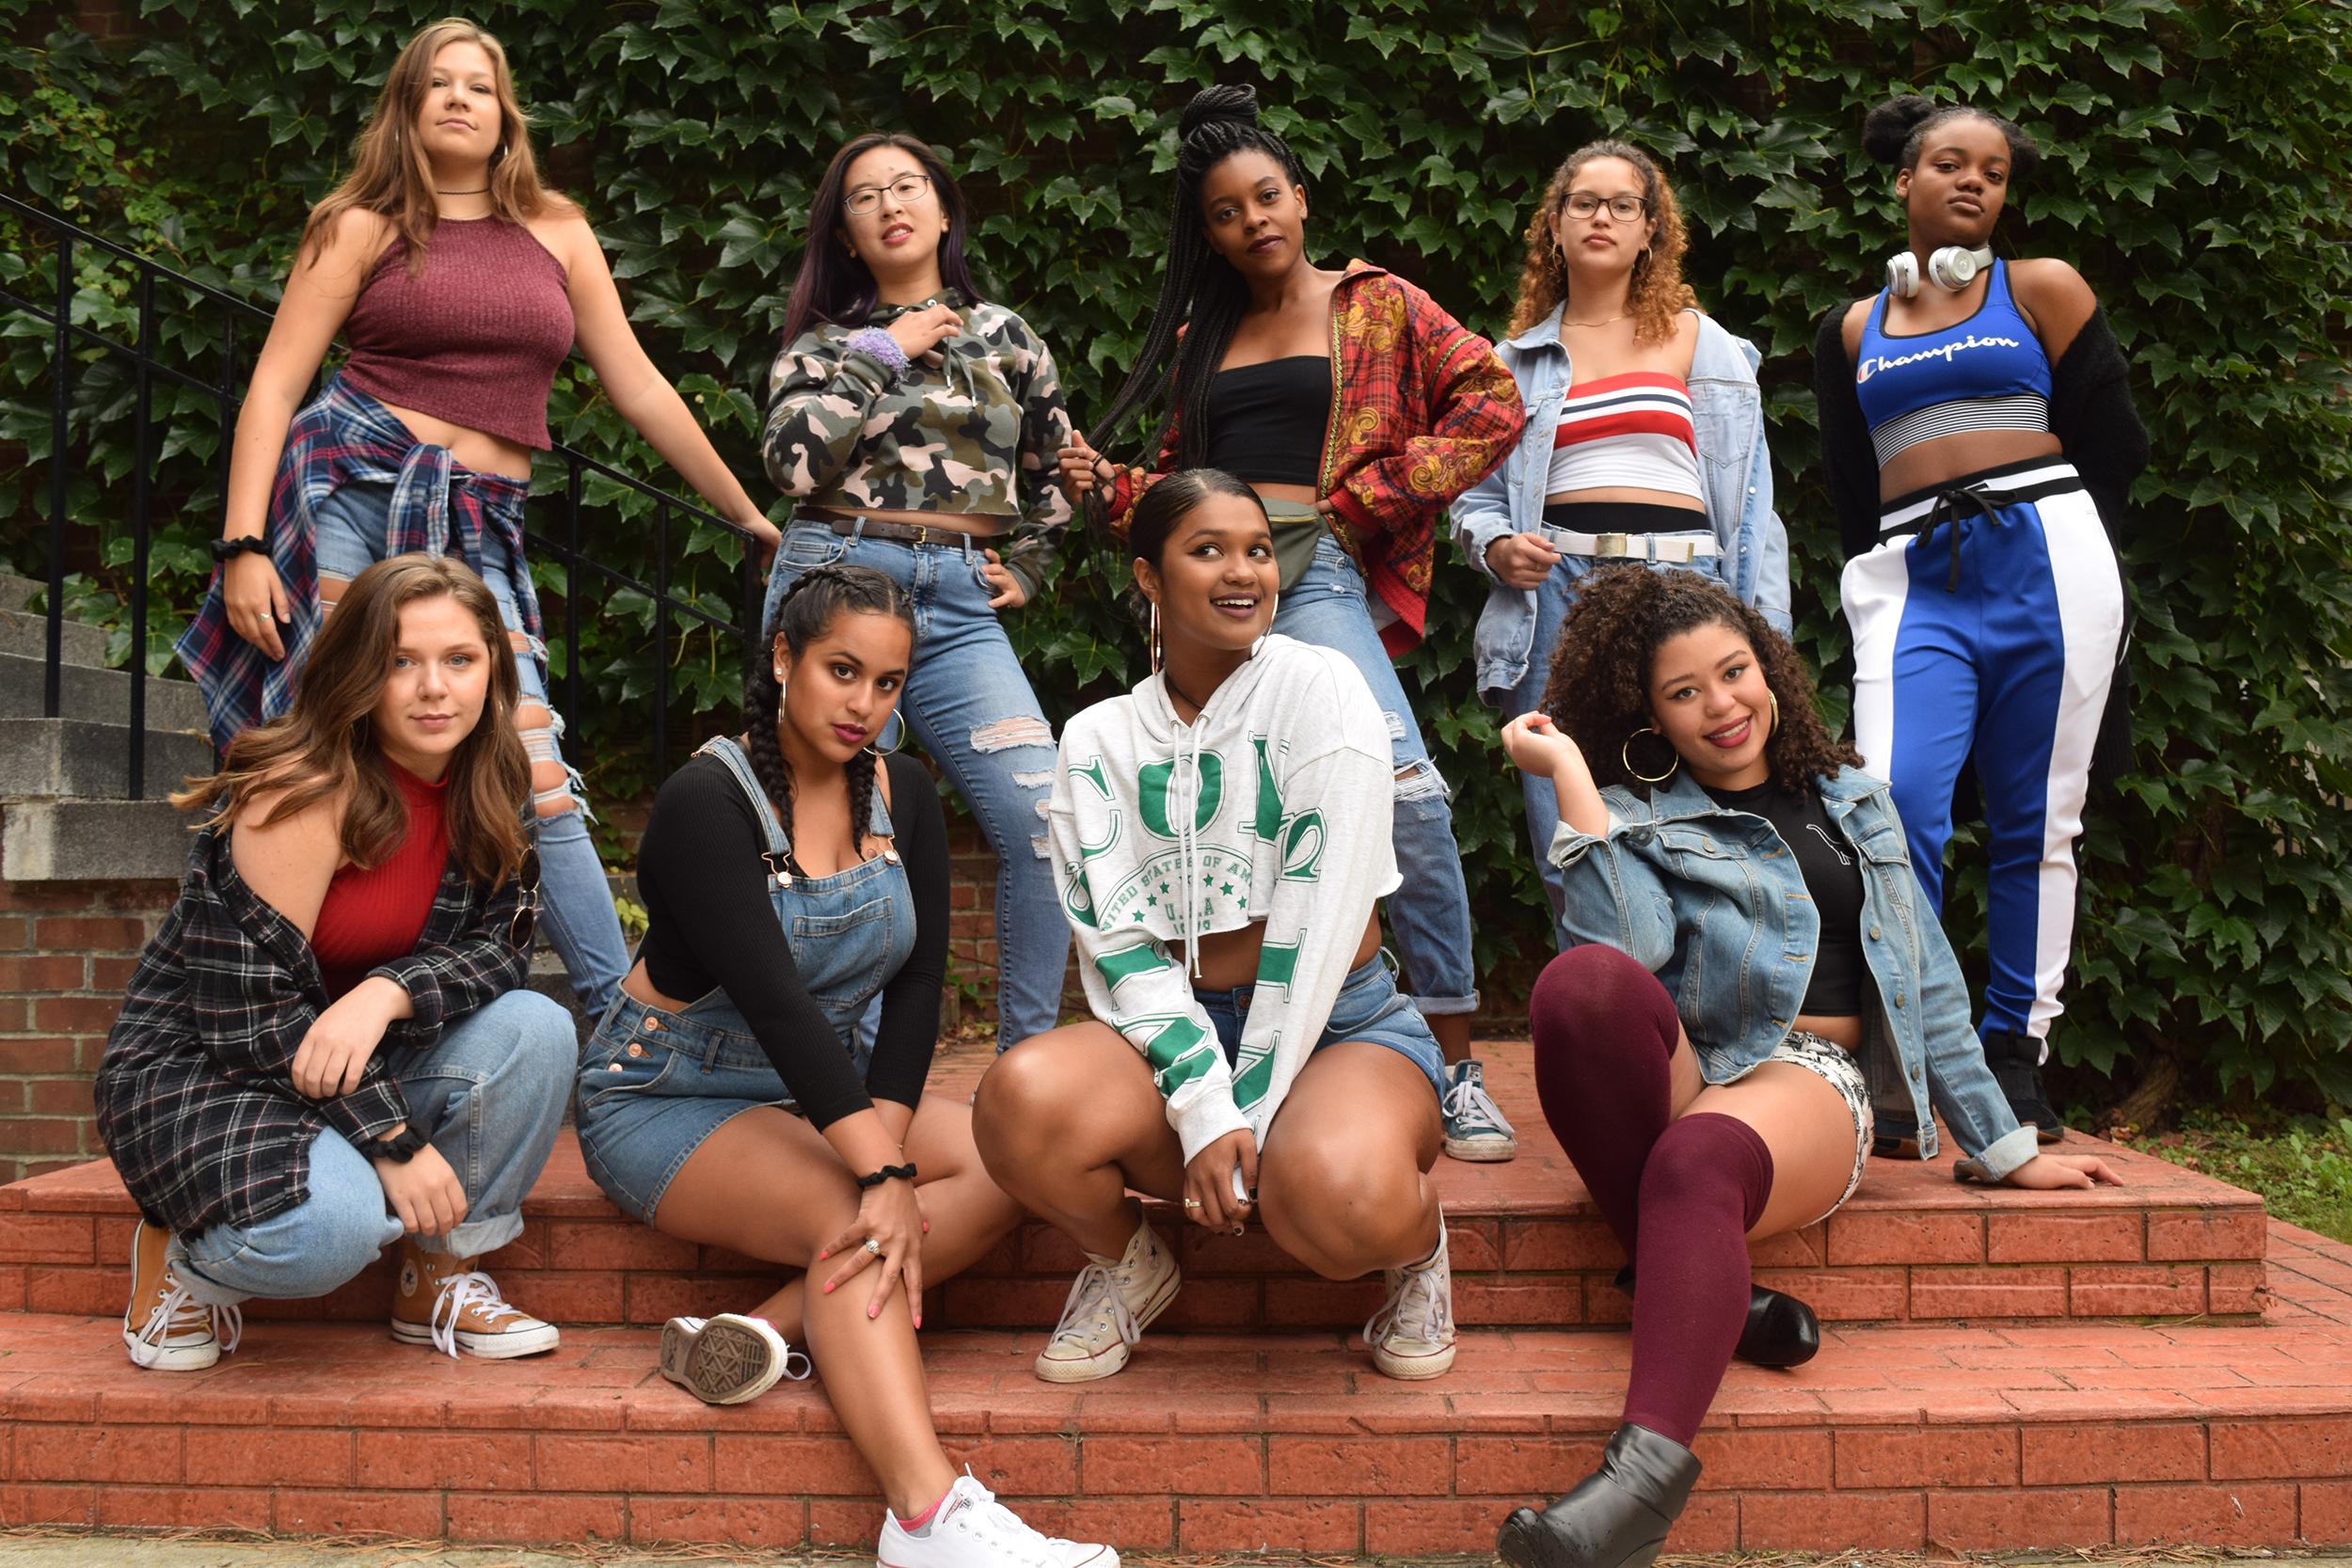 Original Expressions is a dance club which employs various styles of urban dance including hip-hop and various cultural styles. They offer all students a welcoming space to express themselves and share their passion and love for dance (courtesy of Natalie Hayes).